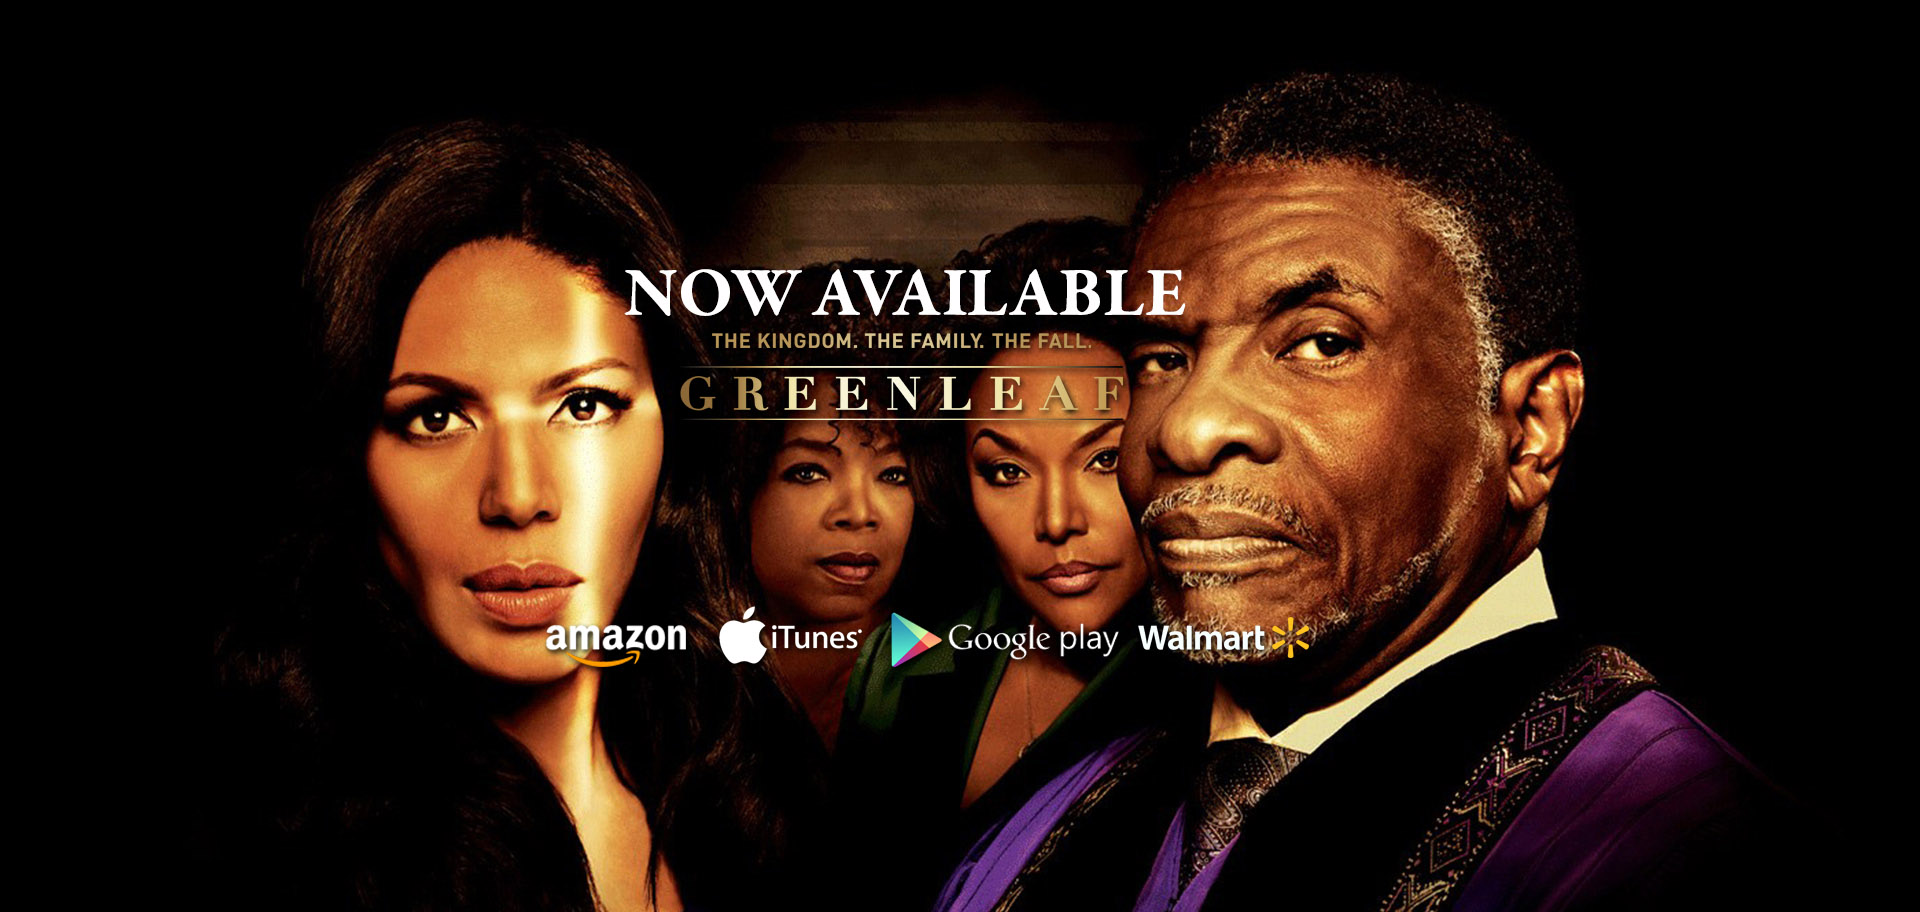 Greenleaf Website Full Image Replace